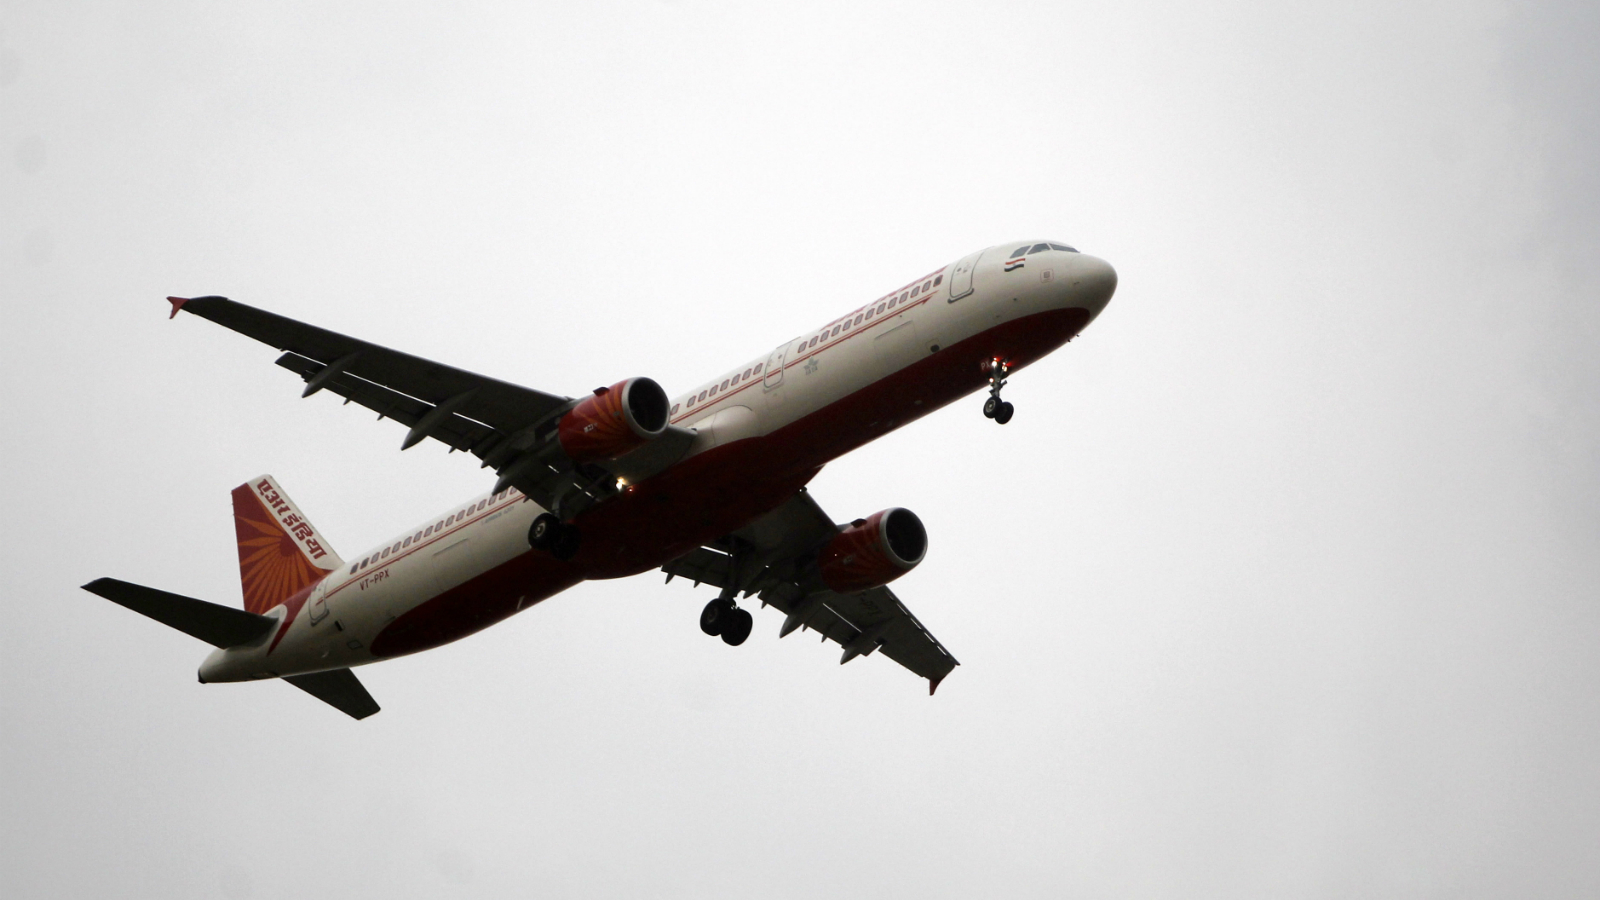 An Air India passenger jet approaches to land at Indira Gandhi International Airport in New Delhi, India, Monday, May 14, 2012. At least 300 Air India pilots walked out from their work for the past one week, leaving hundreds of passengers stranded at Delhi and Mumbai airports. Air India operates 450 international and domestic flights every day. May 14, 2012